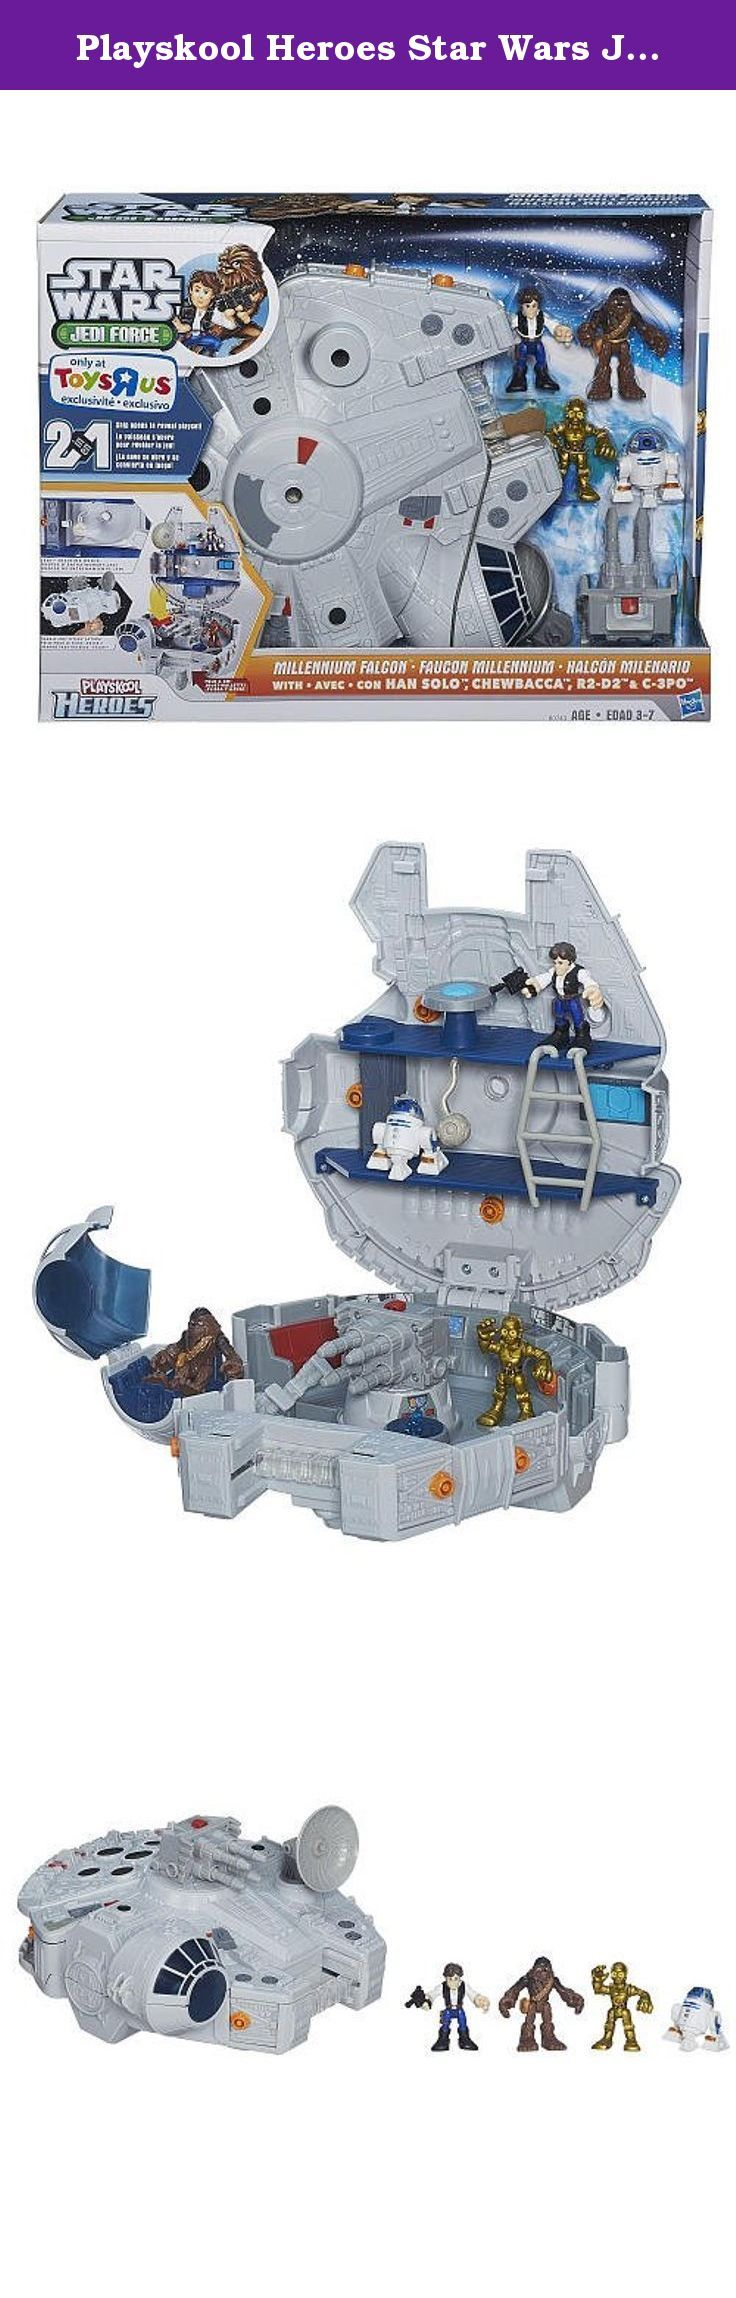 Playskool Heroes Star Wars Jedi Force Millennium Falcon Playset with Han Solo, Chewbacca, C-3PO and R2-D2 Figures. Han Solo and Chewbacca have flown the Millennium Falcon on countless quests for the Rebellion and daring smuggling missions - it's one tough spaceship. After massive upgrades - she can make the Kessel Run in 12 parsecs - this ship is ready to go head-to-head with the evil Empire! Your little Jedi can open this Millennium Falcon playset to reveal the ship within! With its…